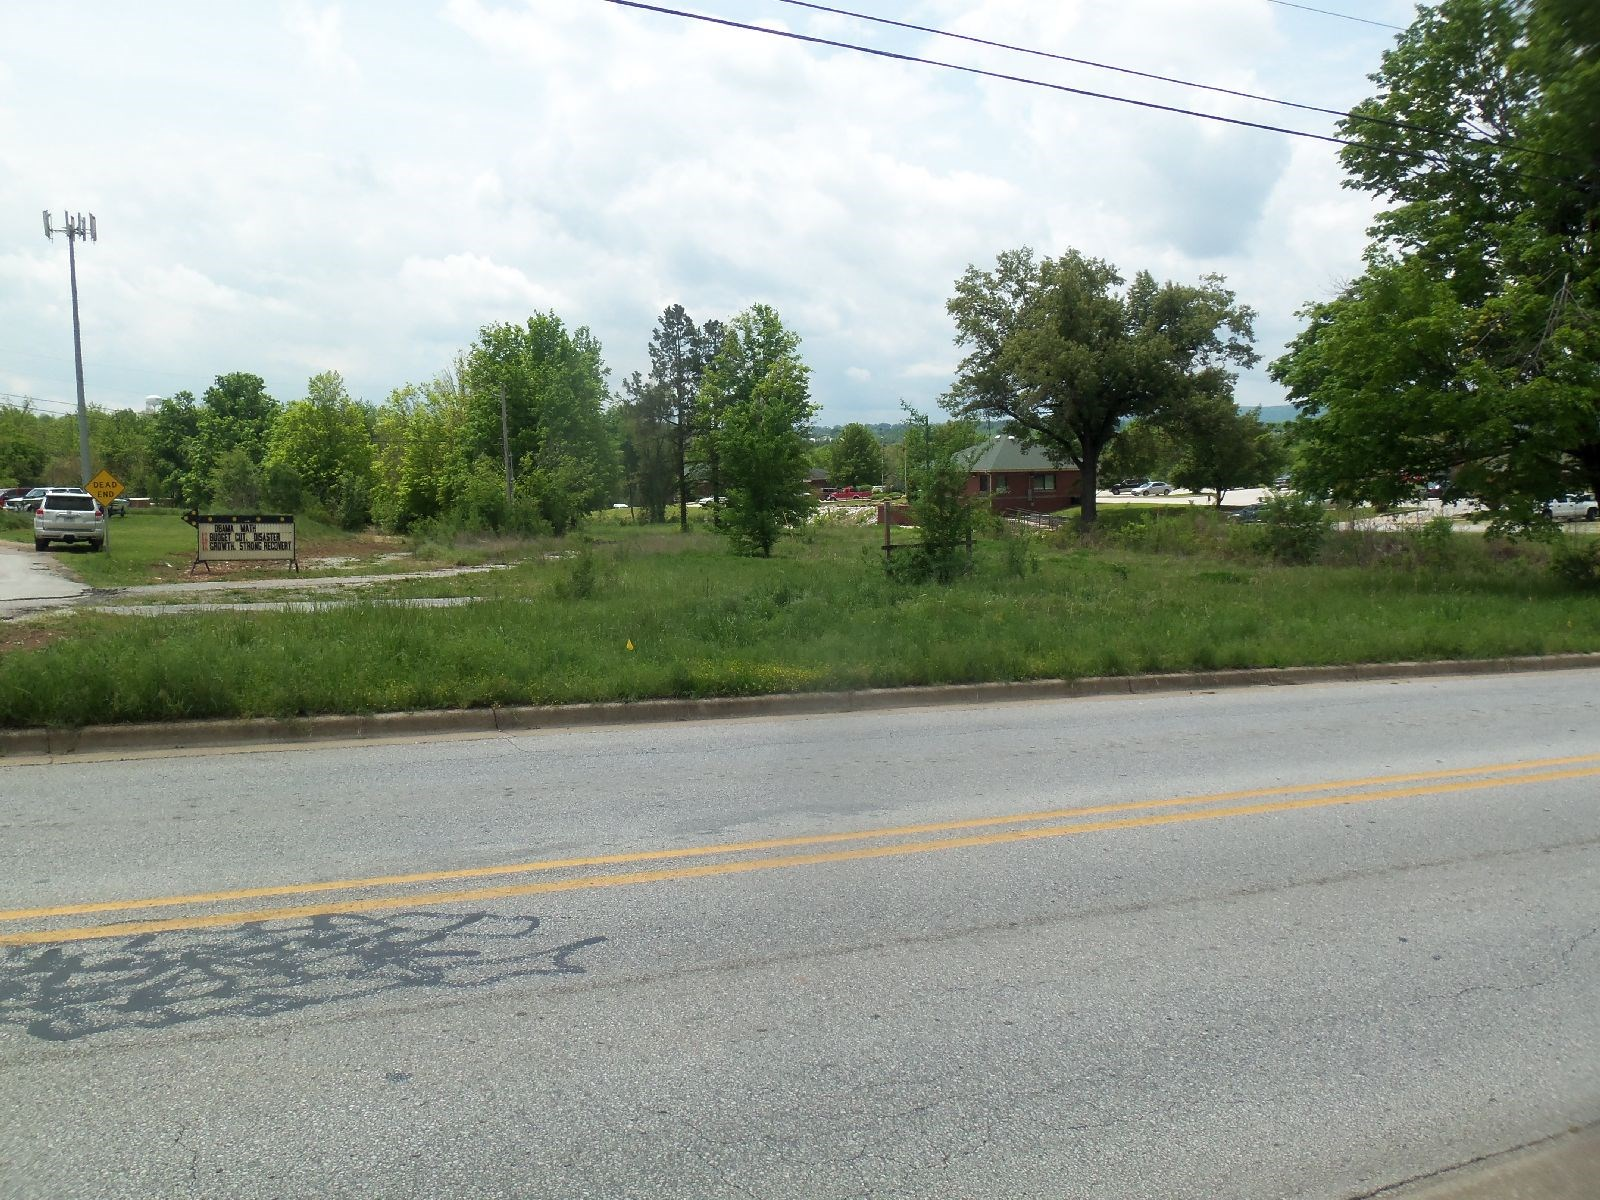 COMMERCIAL LAND PROPERTY NEAR BUSY INTERSECTION IN HARRISON